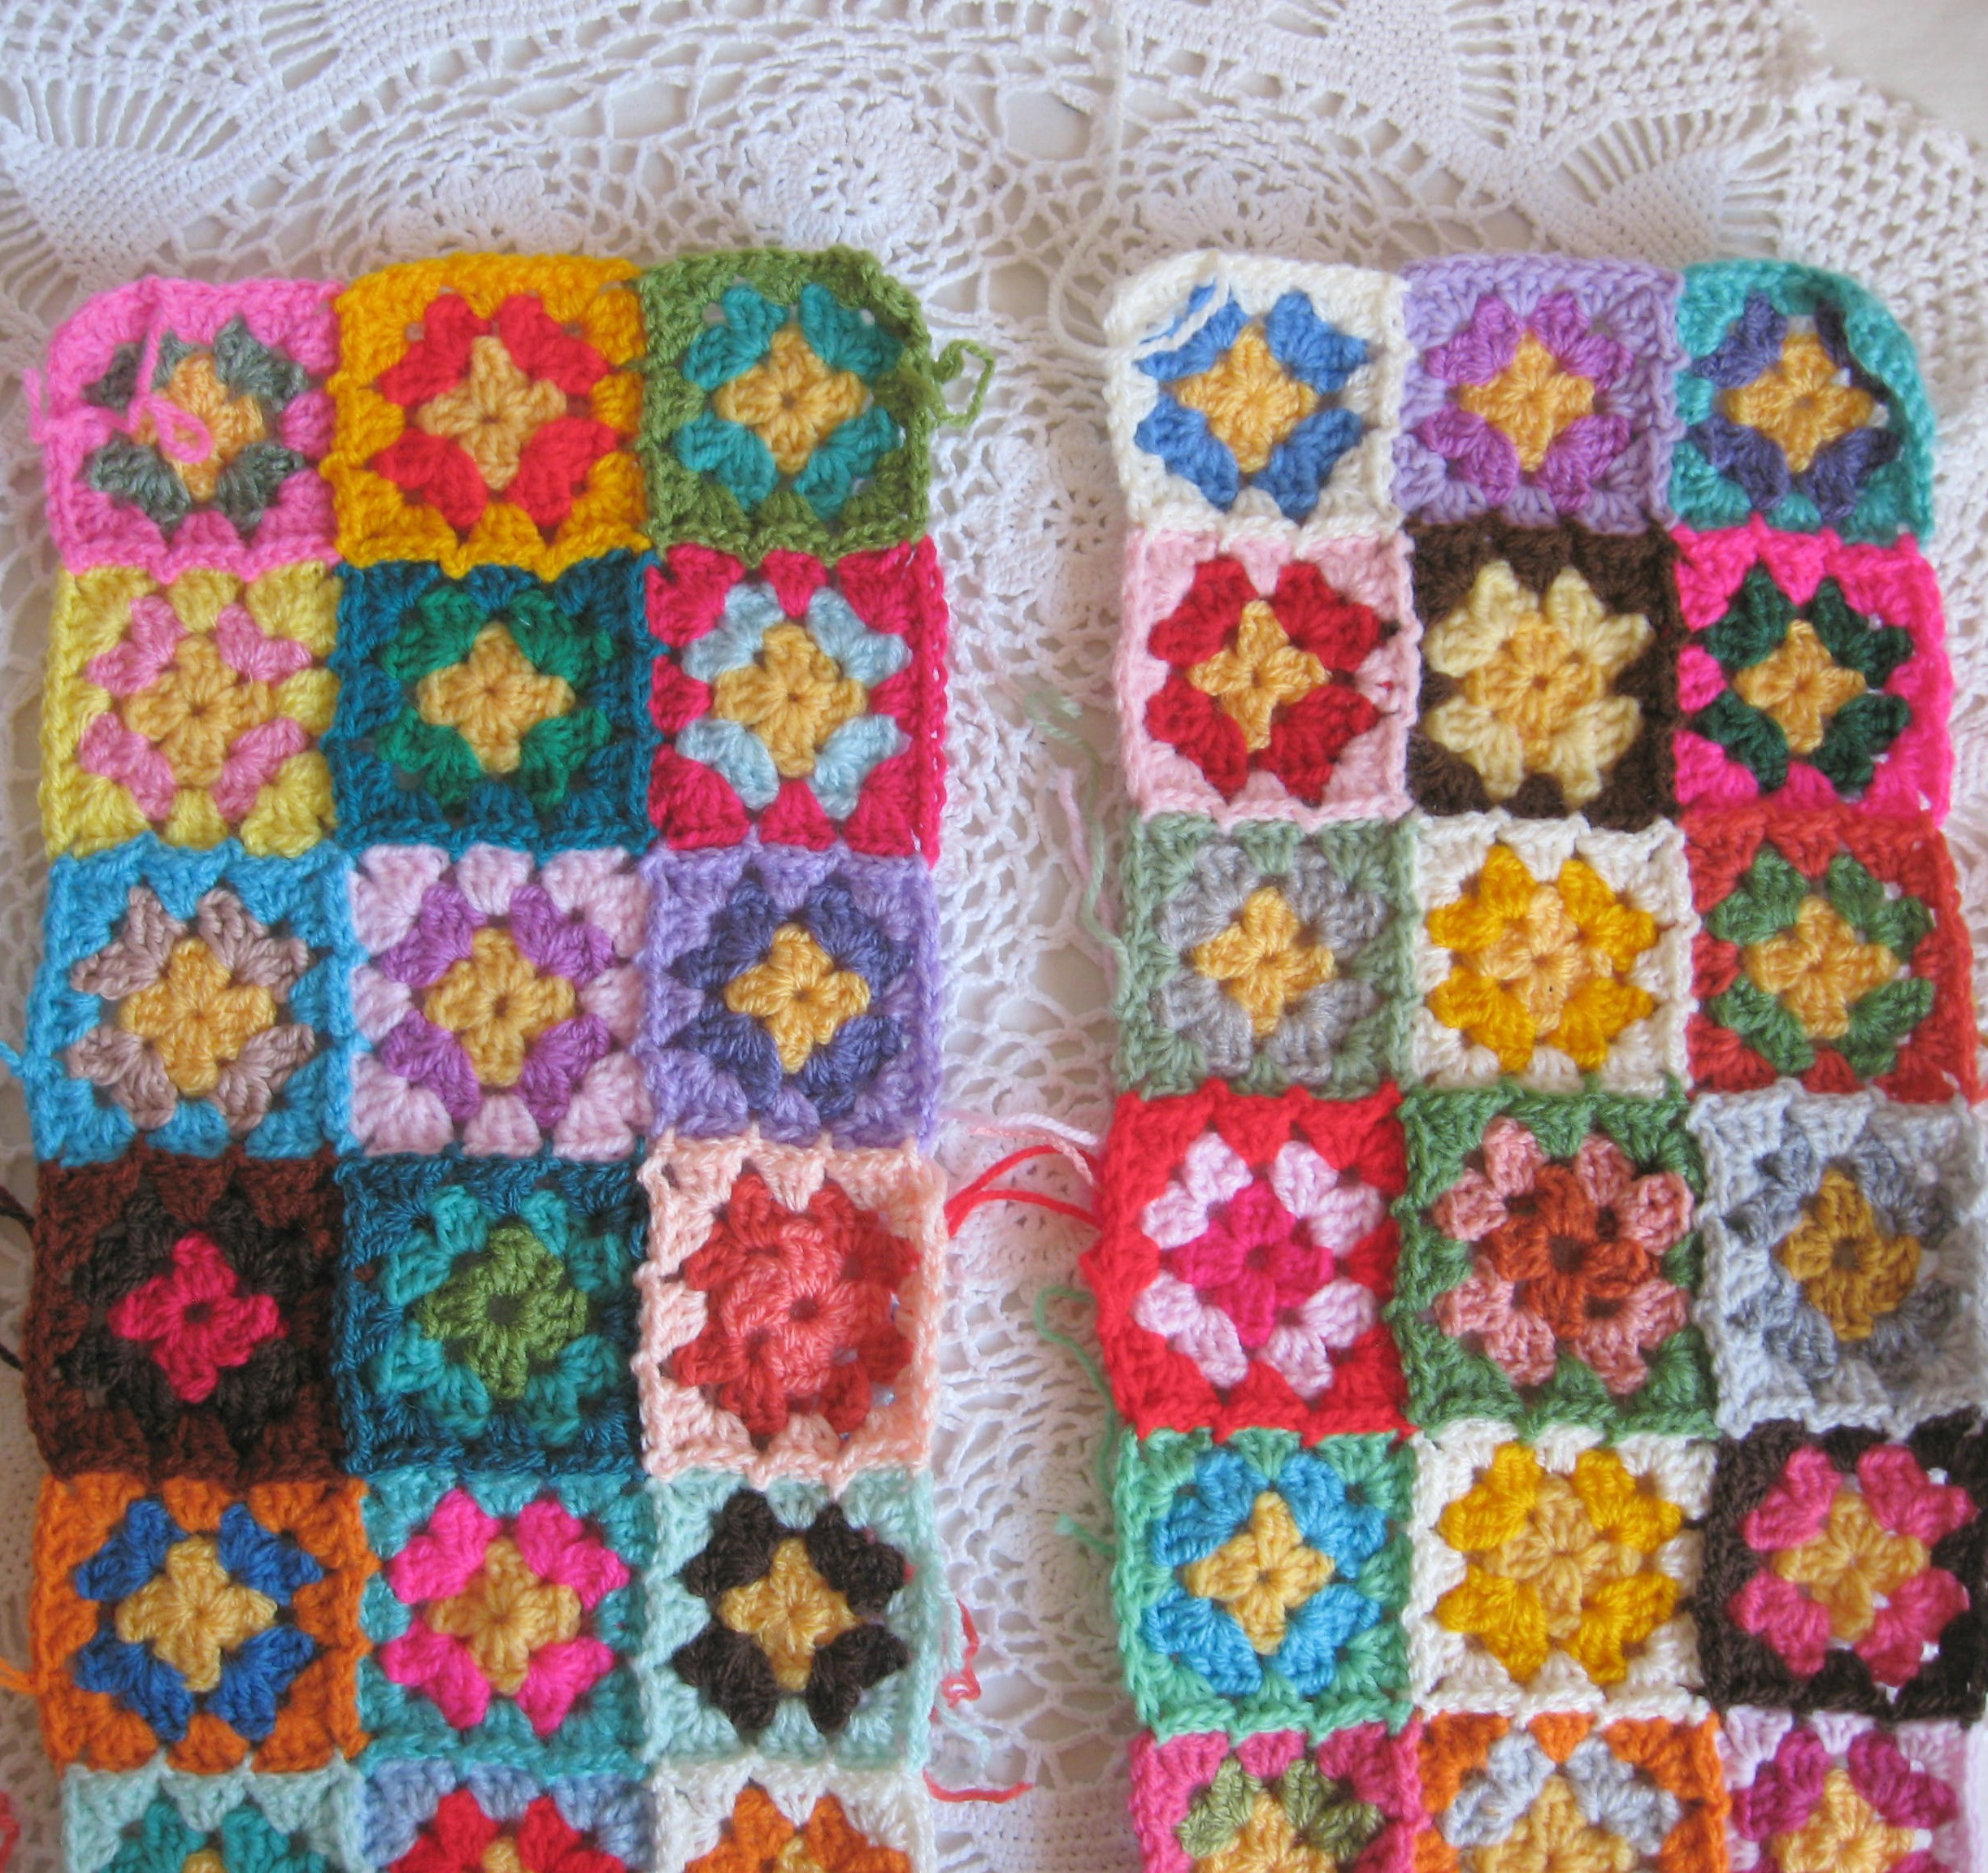 Crocheting to her the granny square patches and